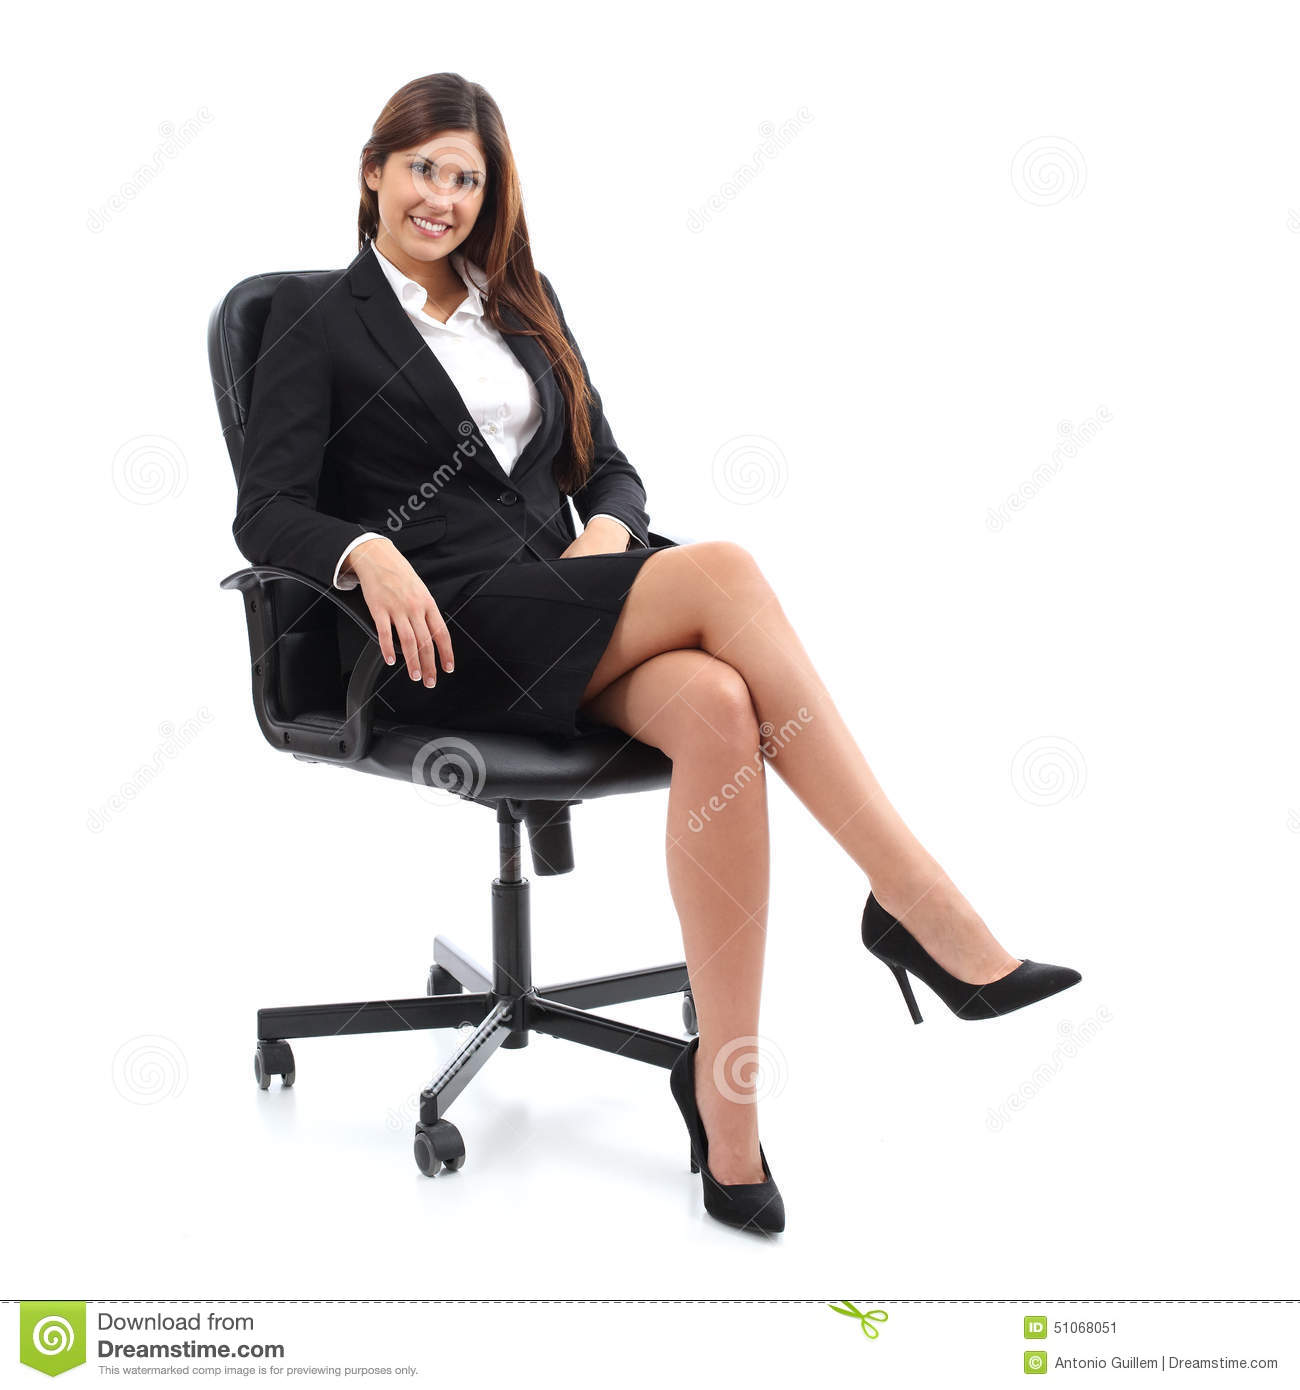 woman sitting in chair blue leather swivel executive business on a stock image